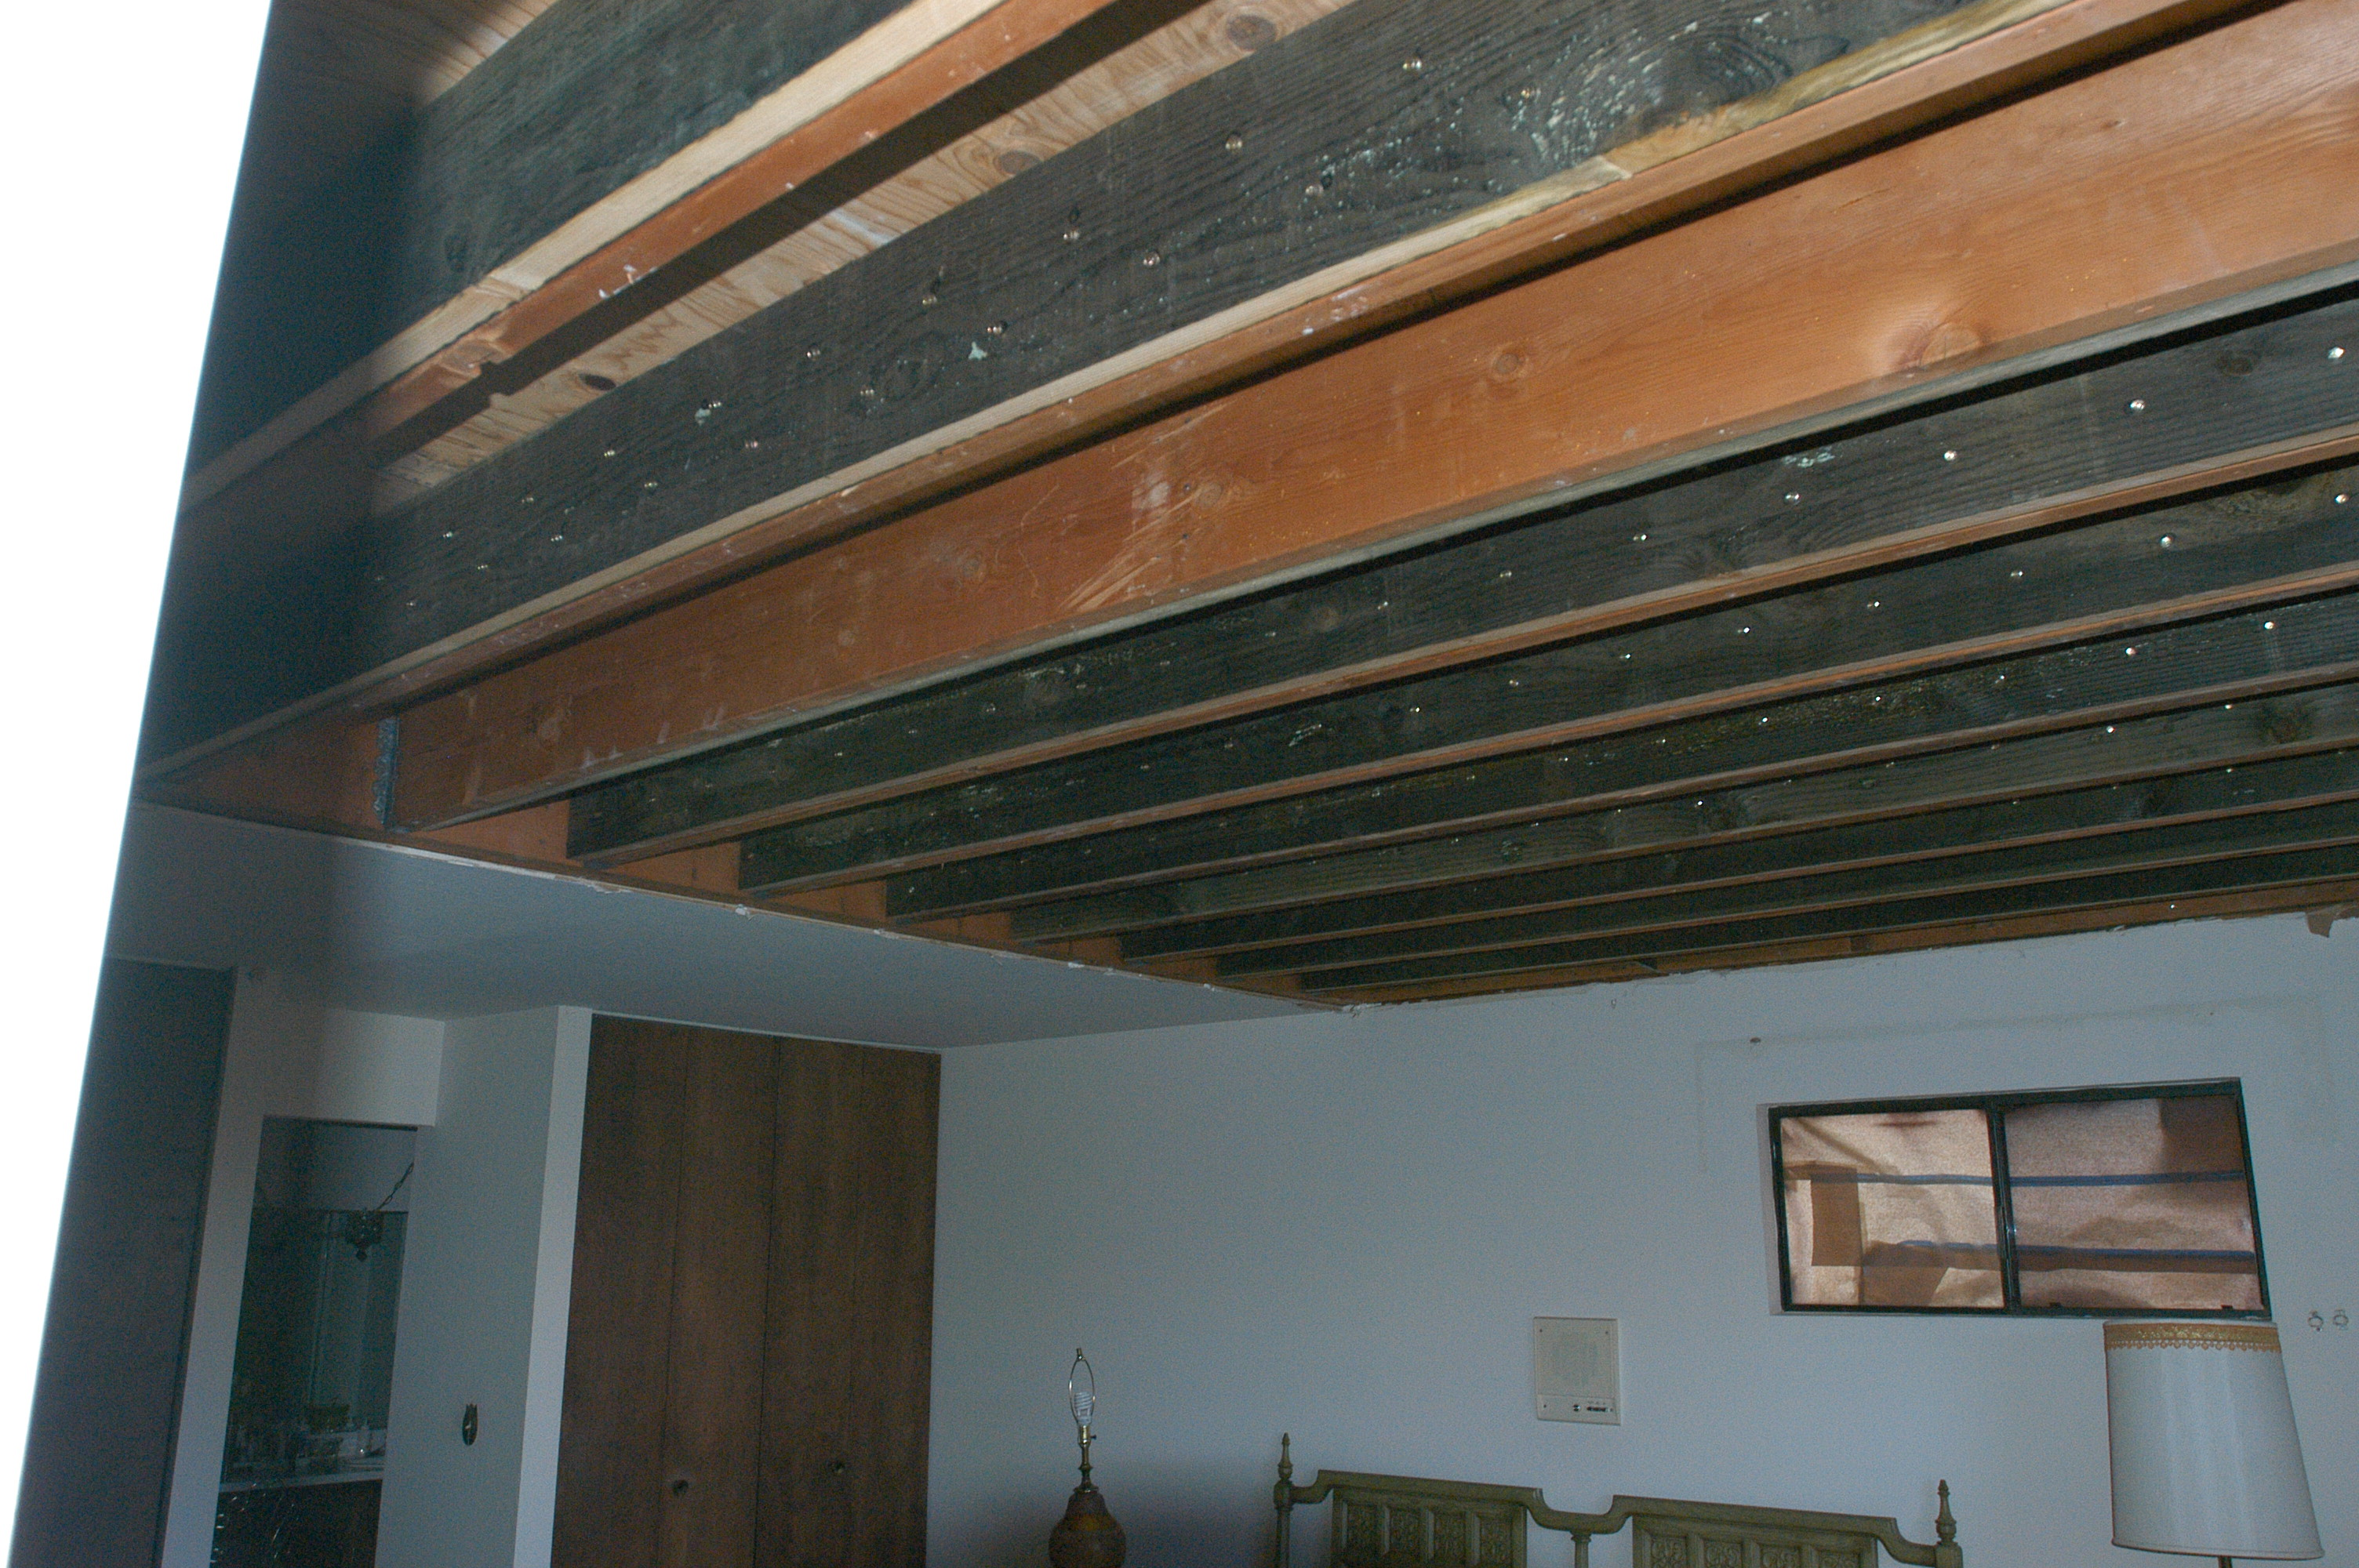 Replacement of Cantilevered Joists Requires Opening Ceiling Inside House